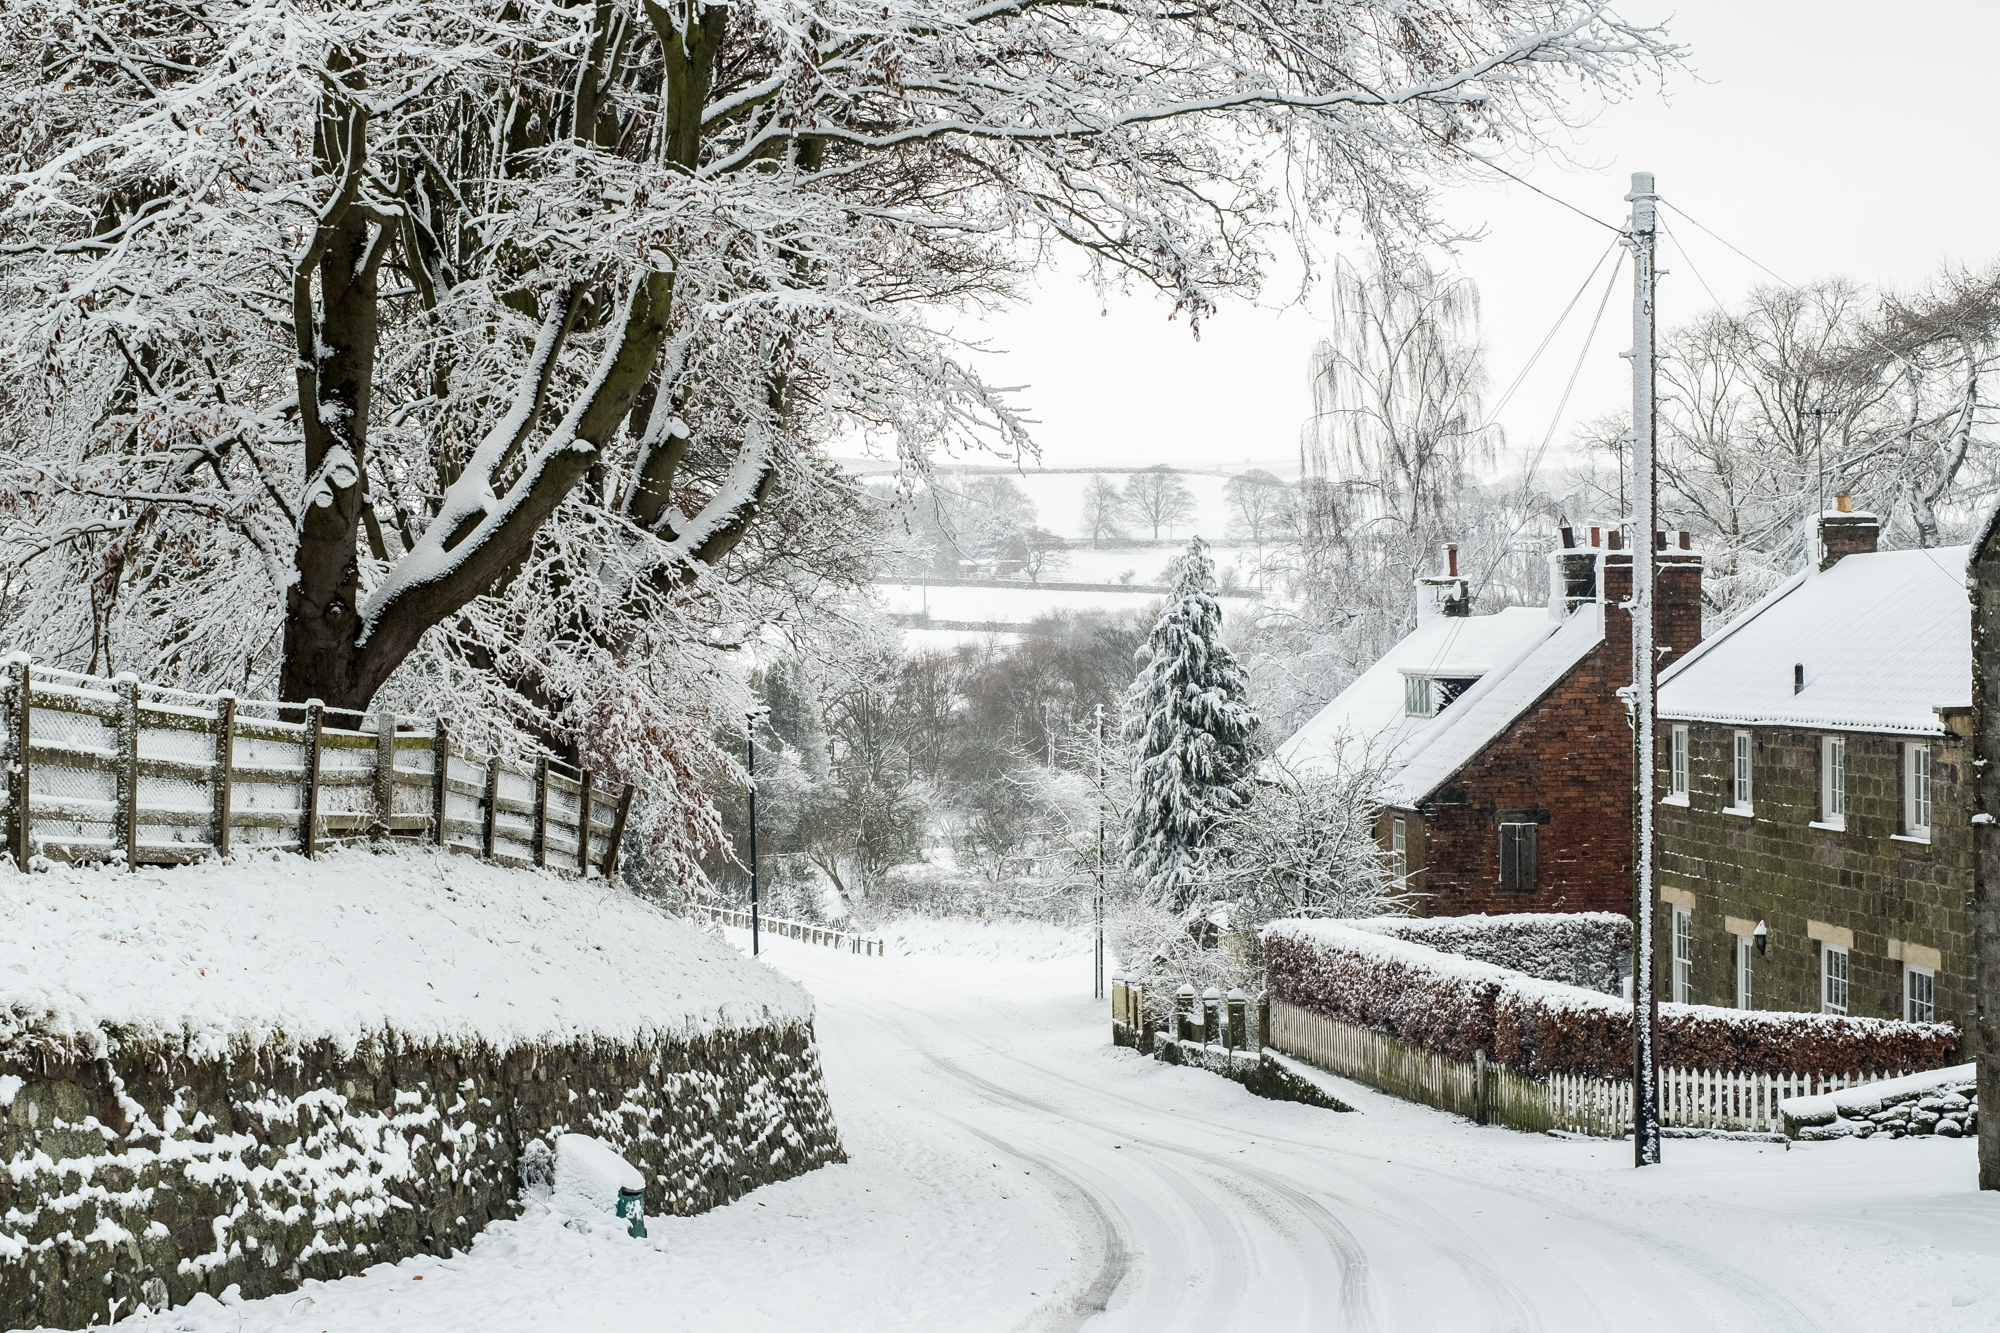 Ainthorpe Village Snow Scenes Danby North York Moors A5 Christmas